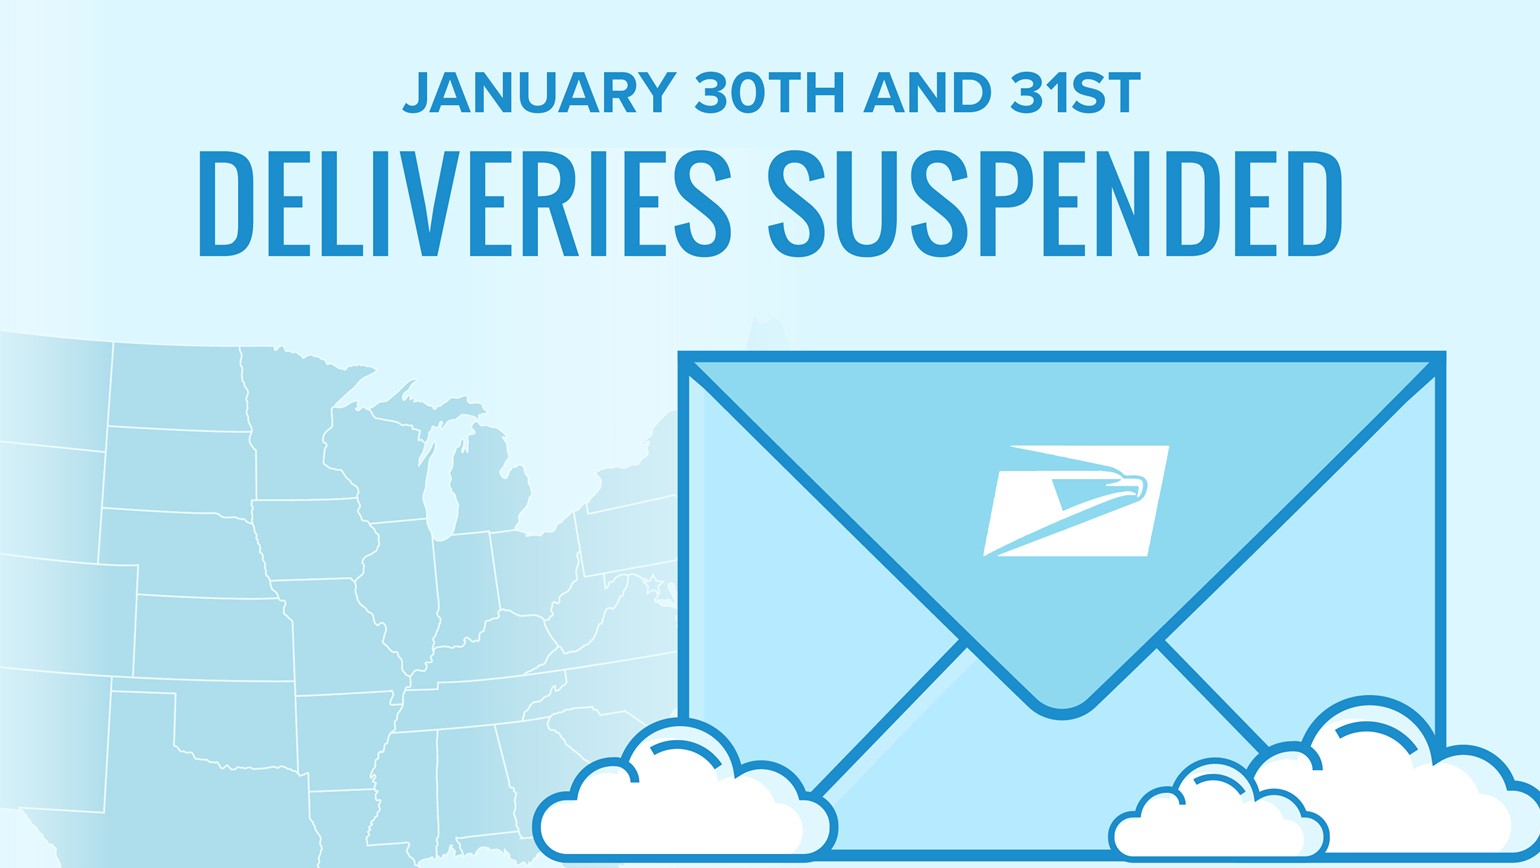 USPS Suspending Deliveries to Parts of the Midwest (1/30-1/31) - How to Handle Impacted Orders